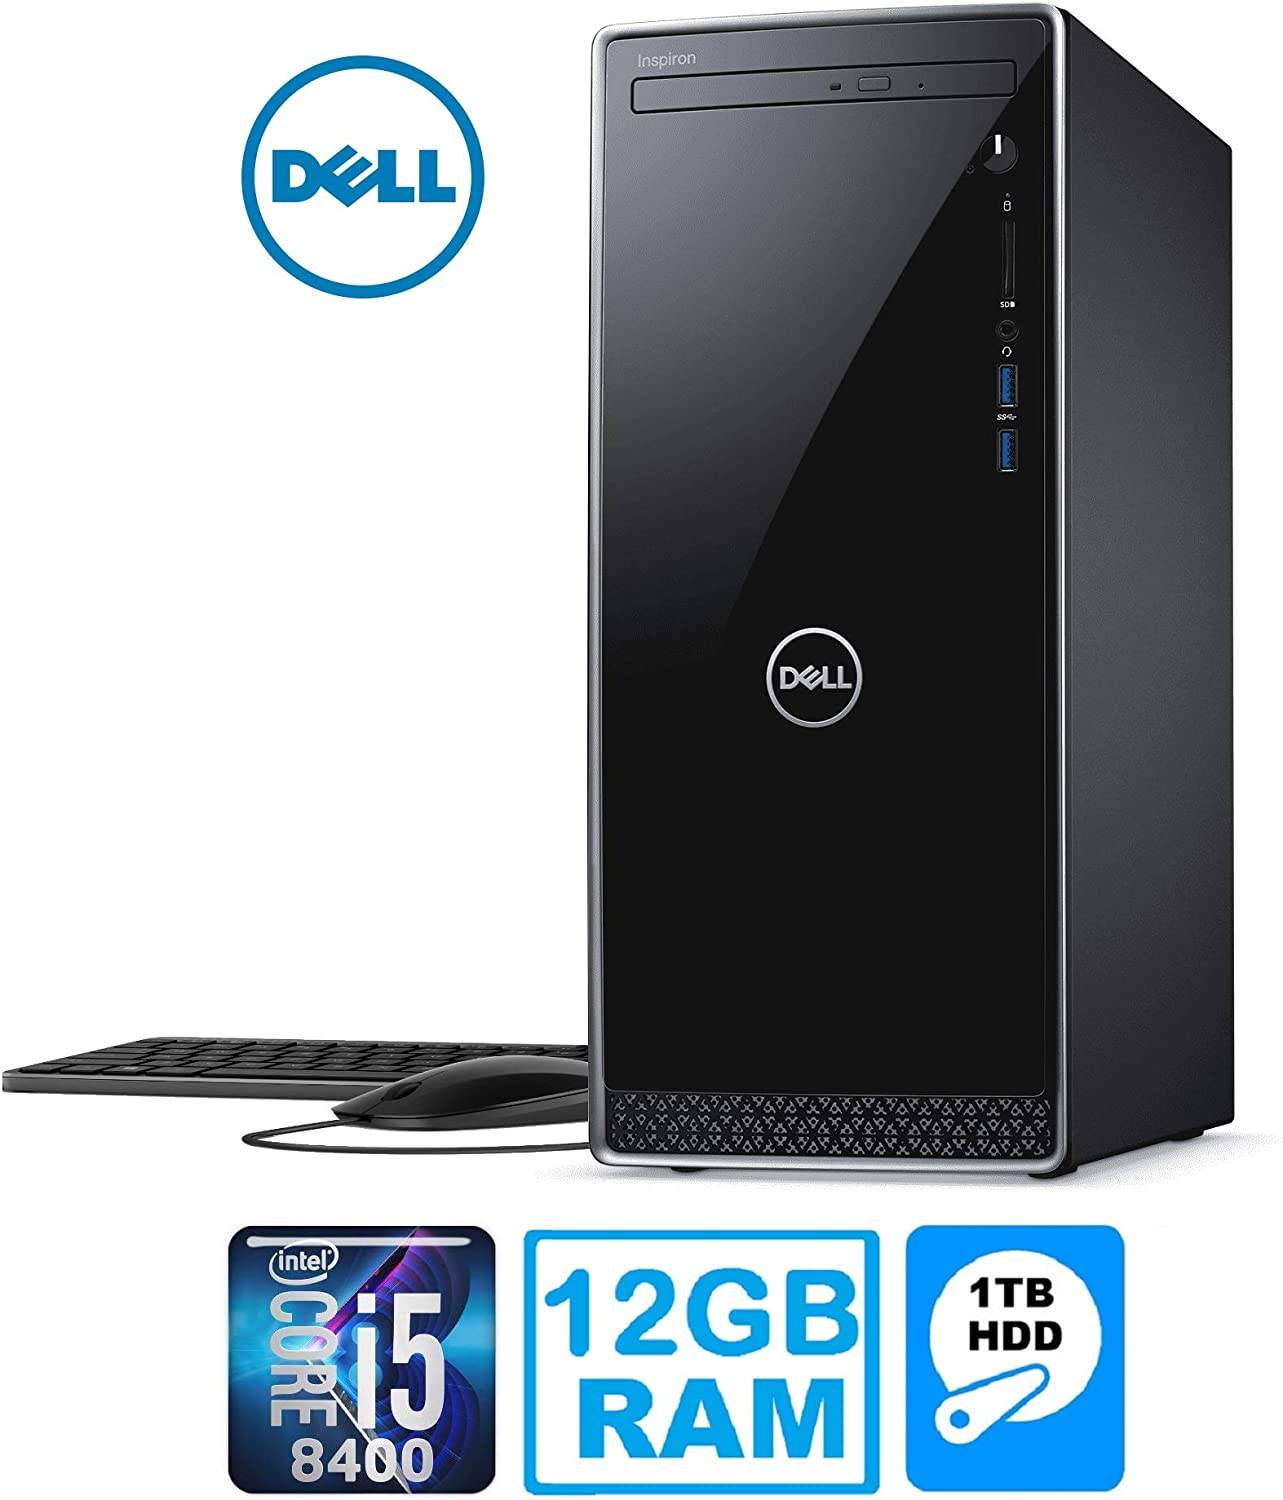 Dell Inspiron 3670 Desktop PC with Intel Core i5-8400 12GB 1TB HDD Windows 10 (Renewed)